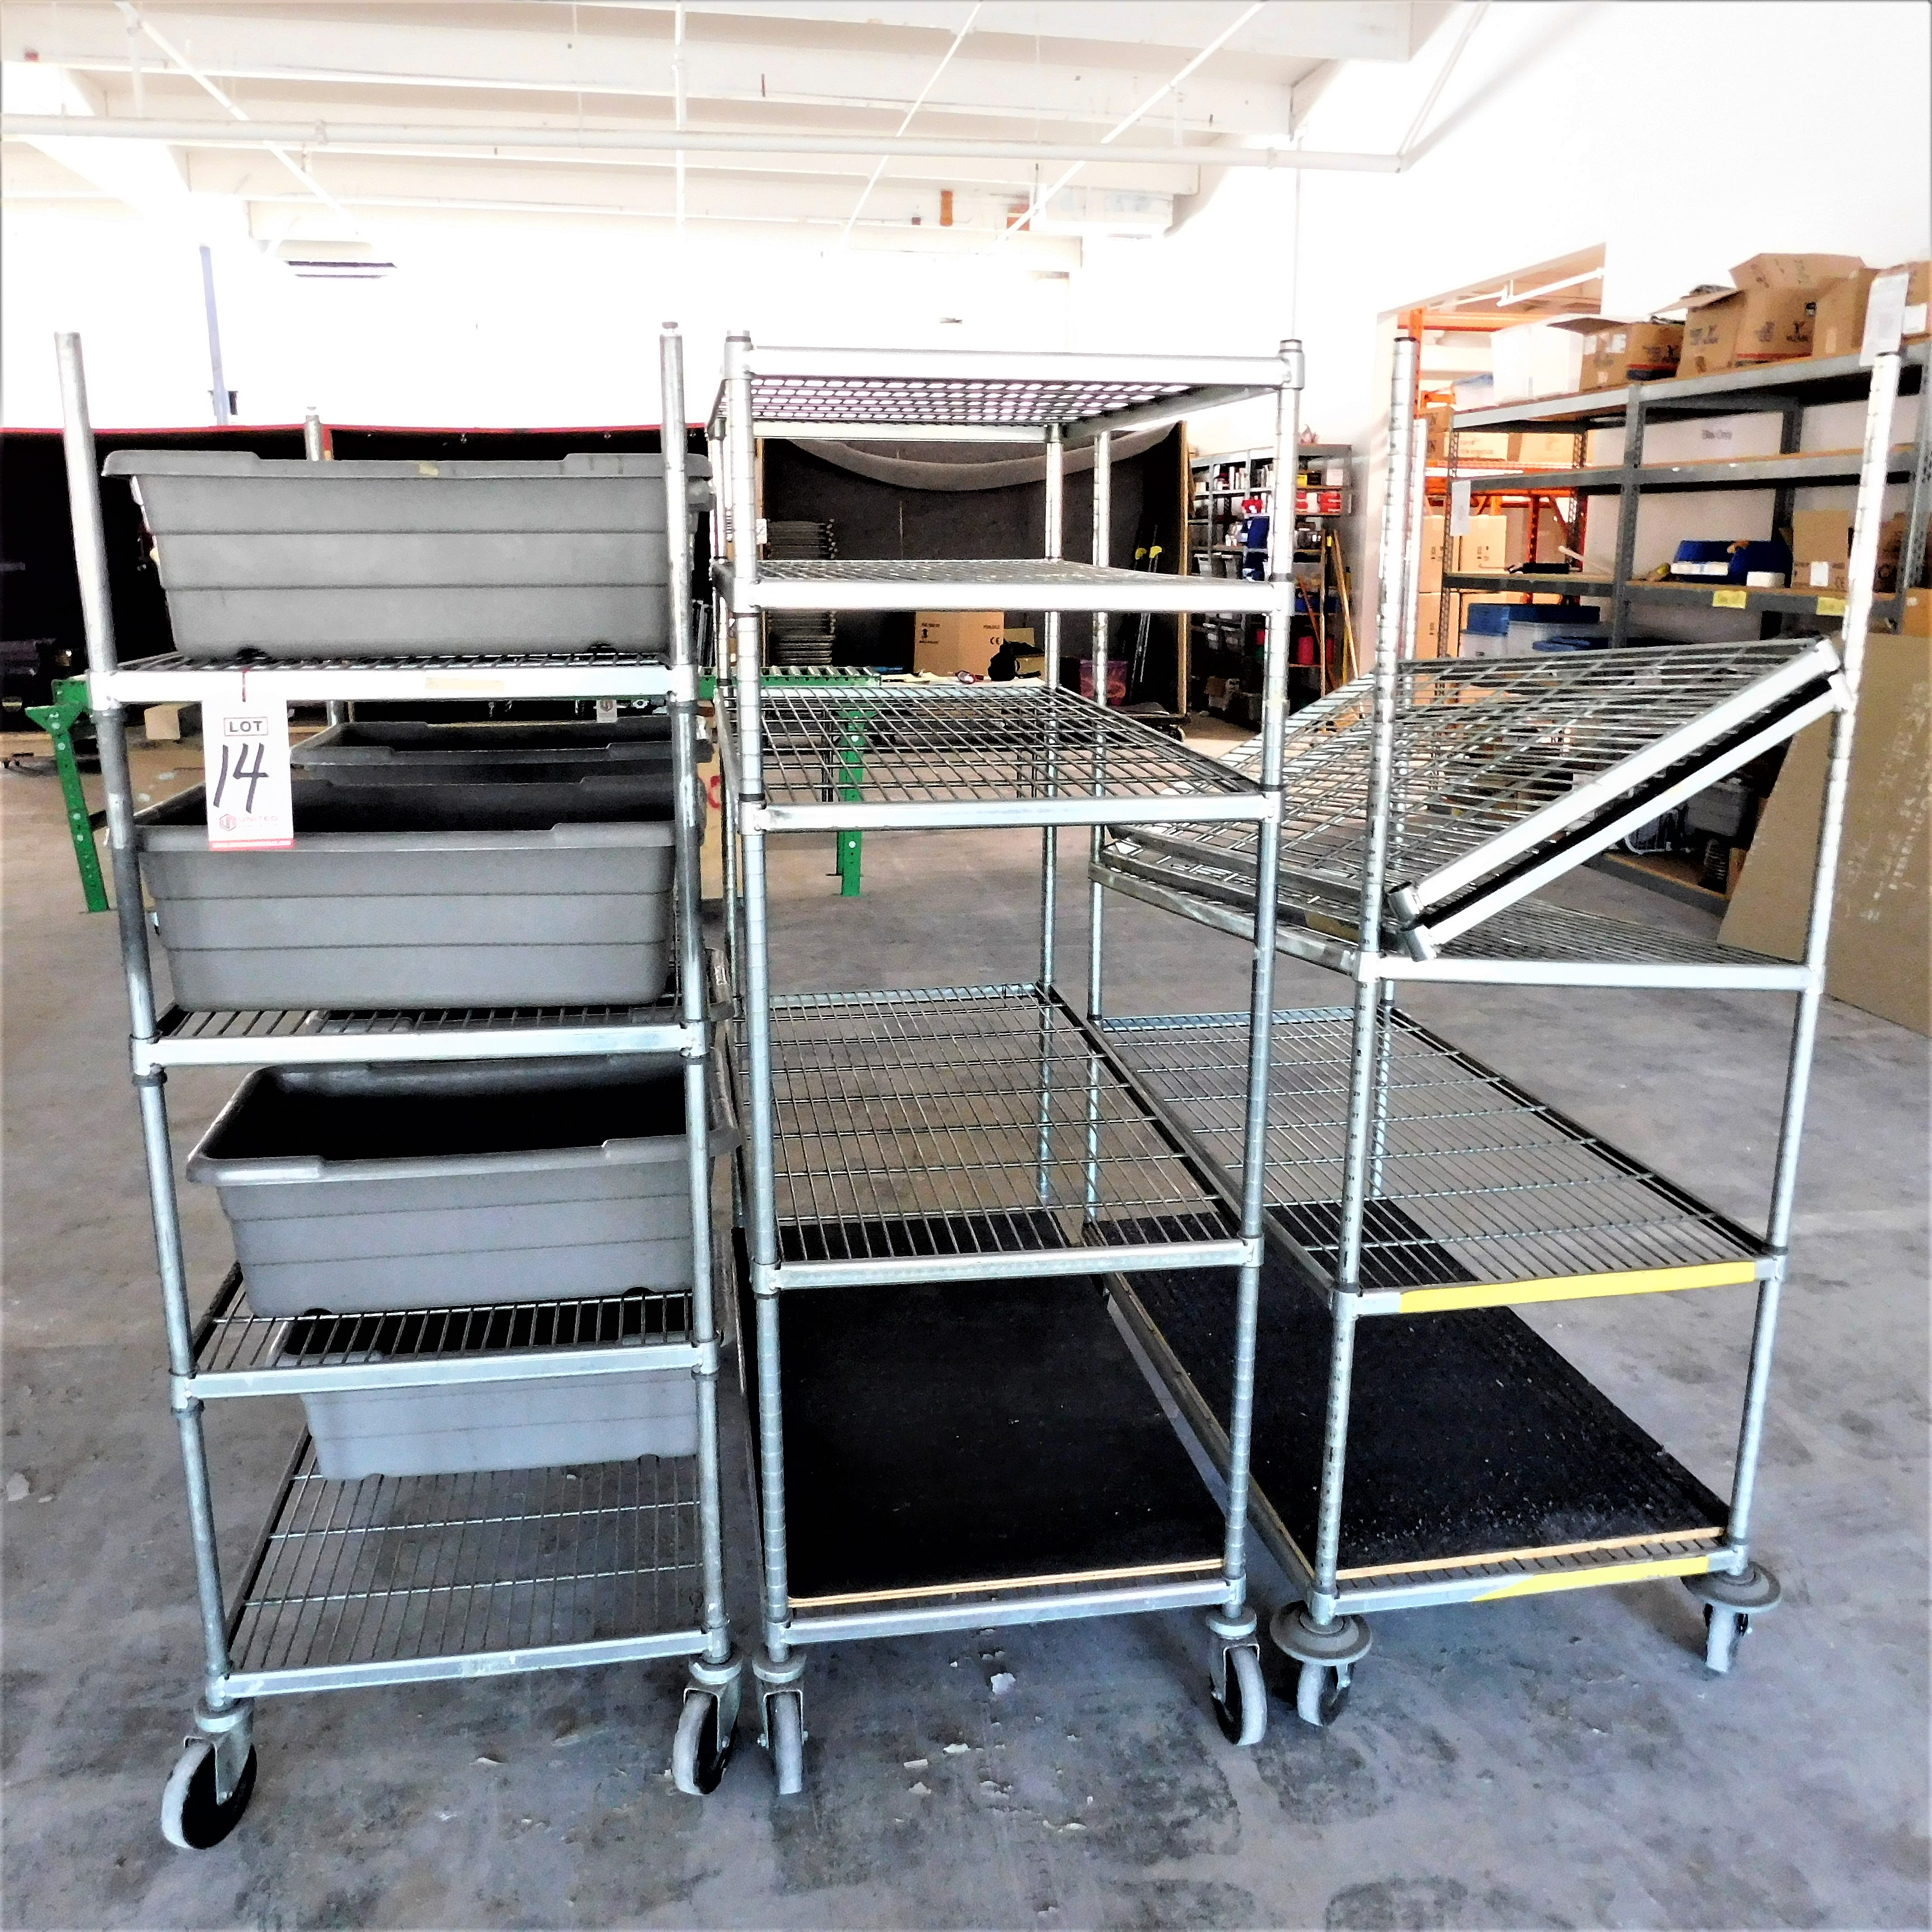 Lot 14 - LOT - (3) WIRE METRO CARTS, 2' X 4', PLASTIC TUBS